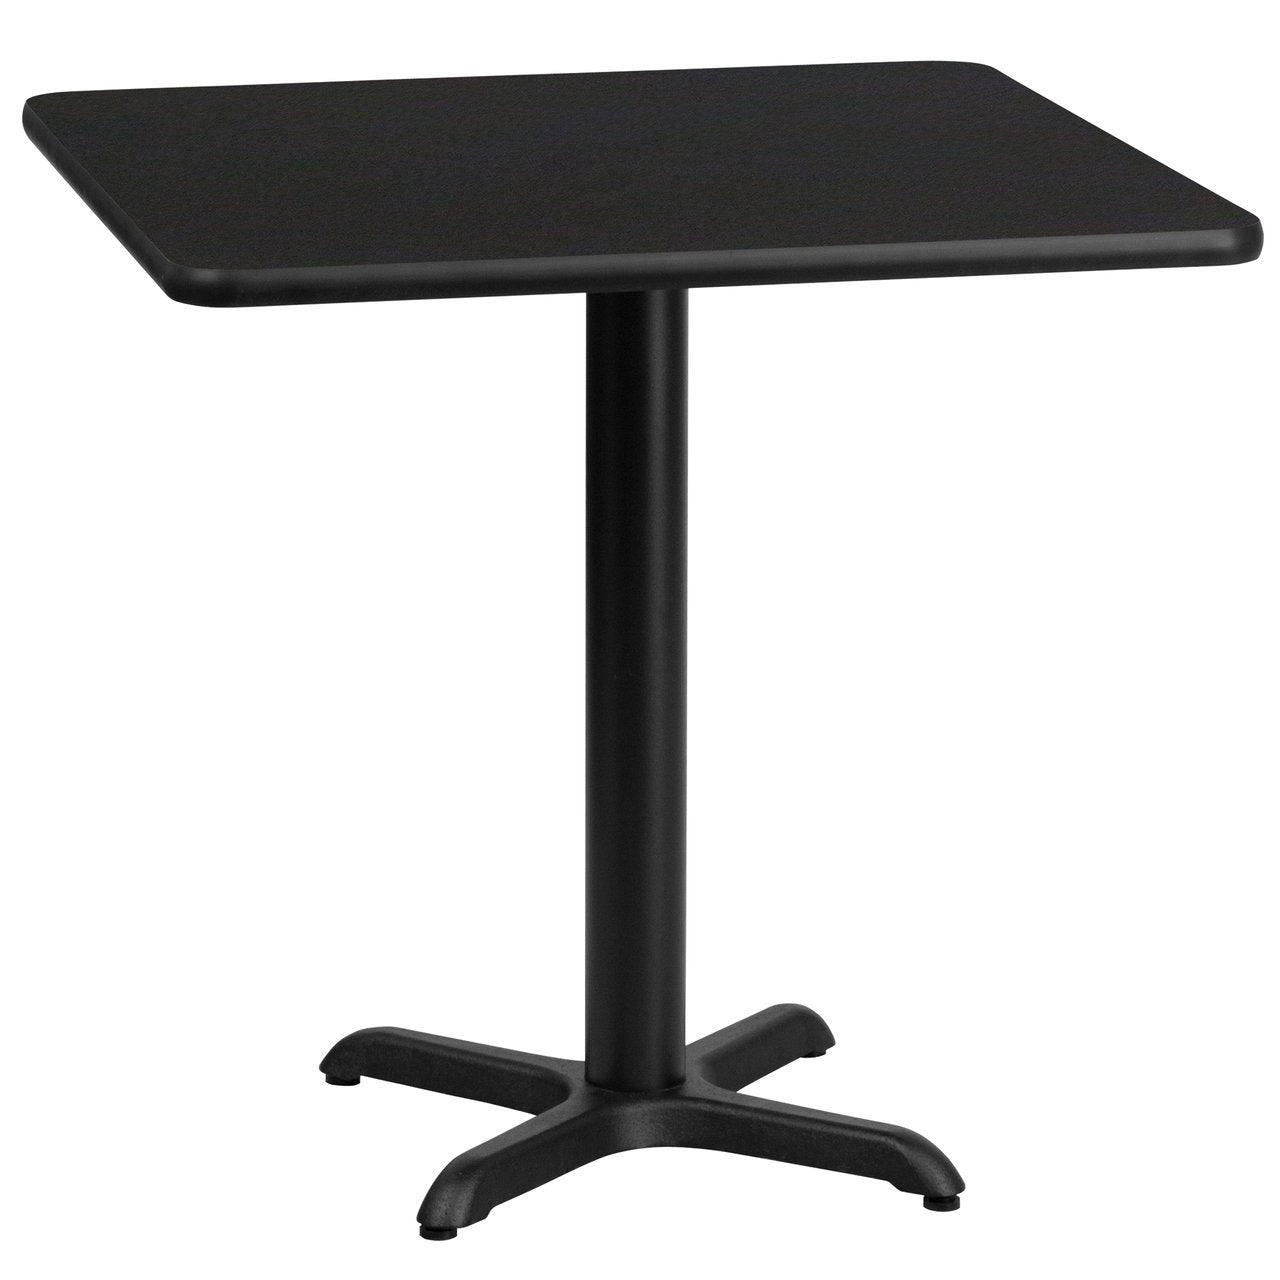 TABLE AND BASE - REGULAR HEIGHT